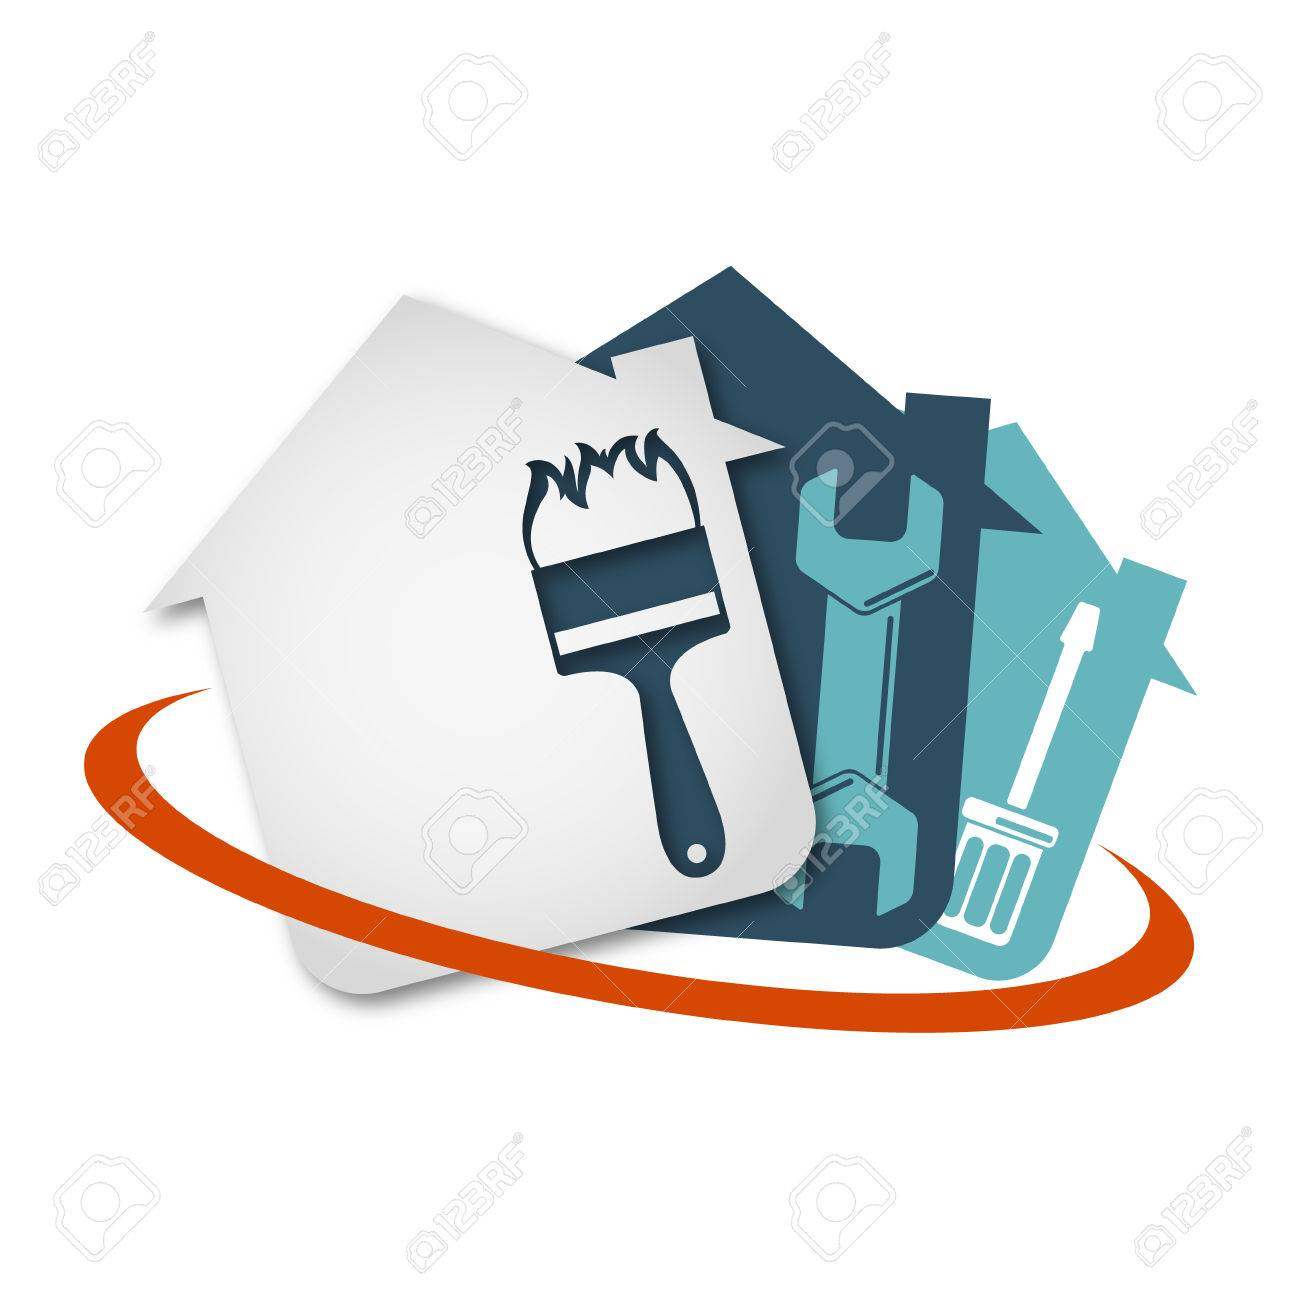 Repair of home with a tool vector - 68962427